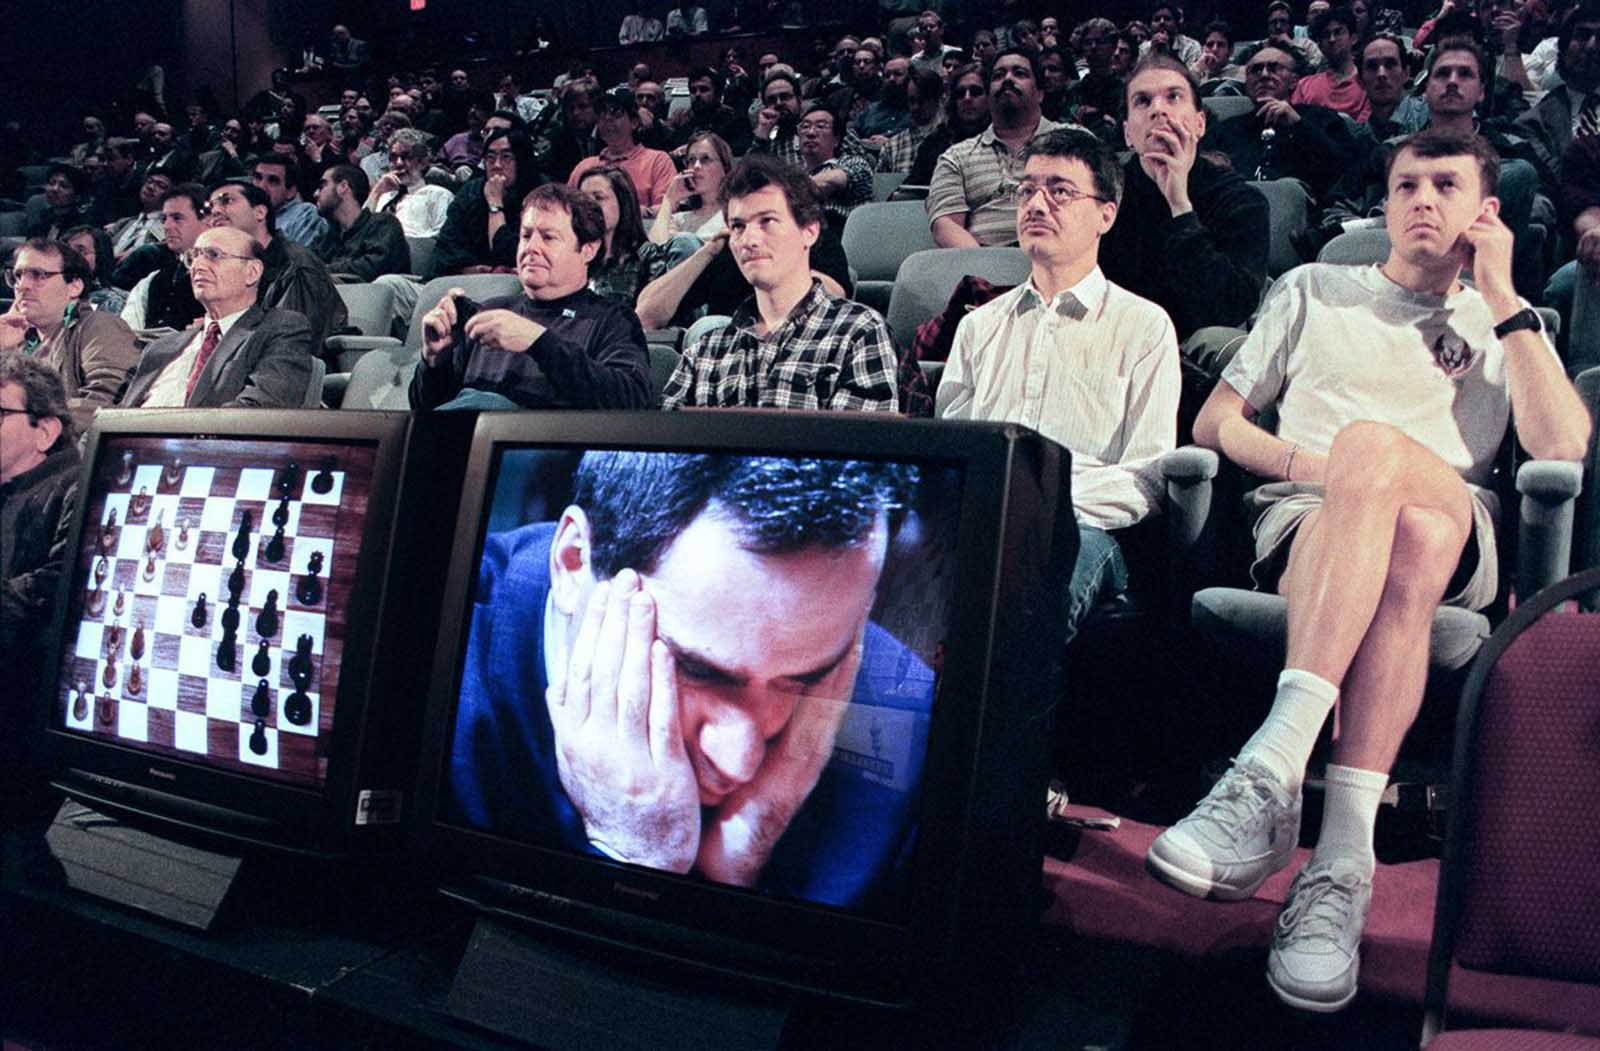 Spectators watch a live broadcast of Game 3.